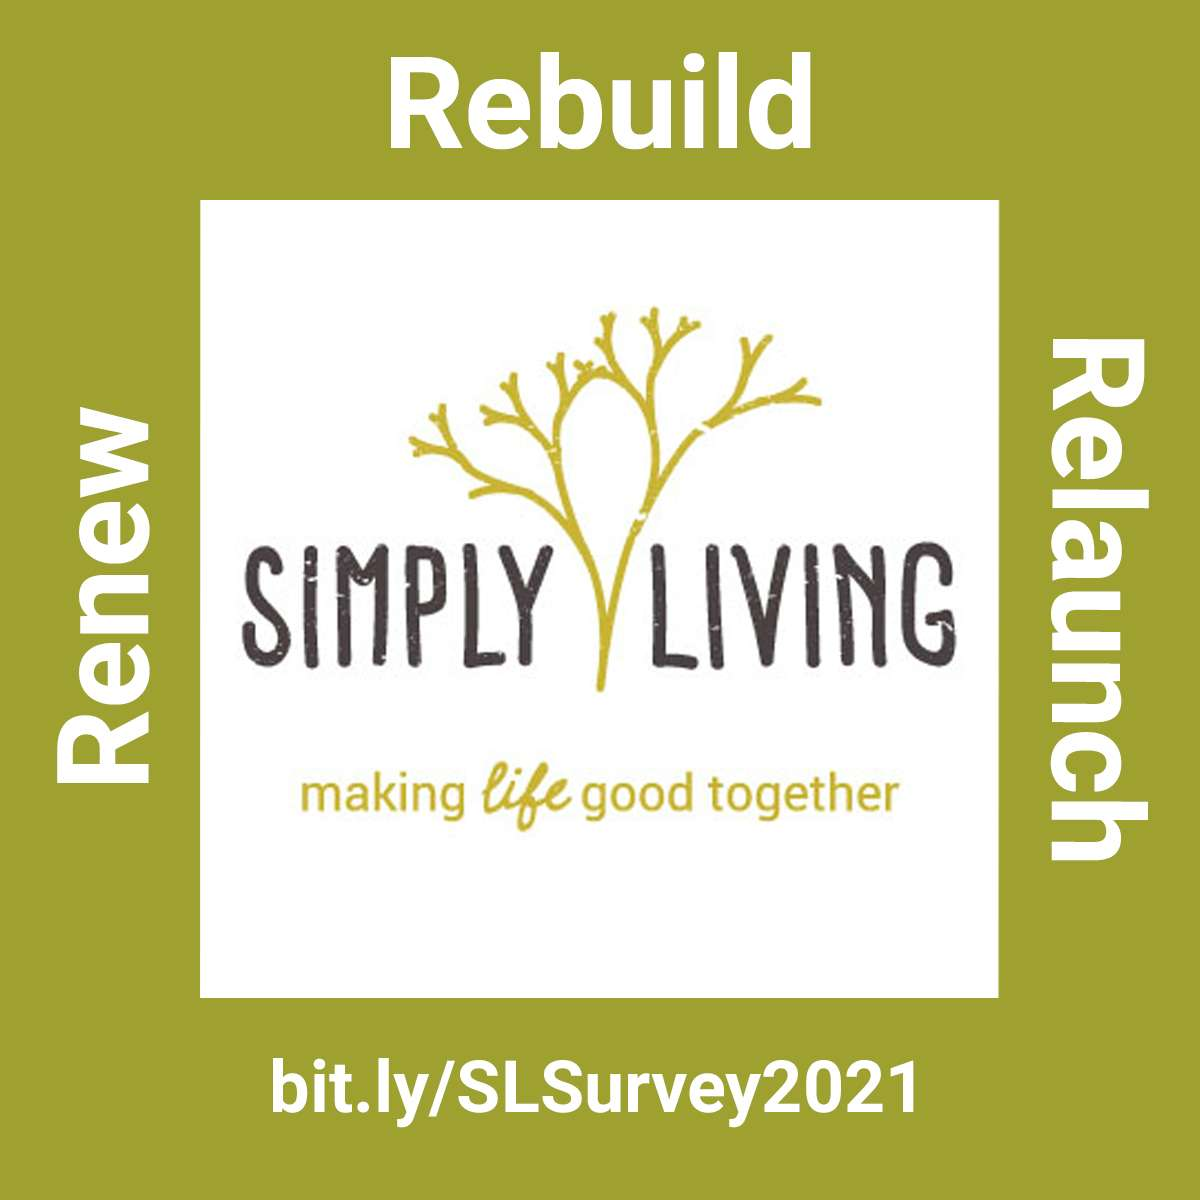 Simply Living Is Renewing, Rebuilding, And Relaunching, And We Want To Hear From You!